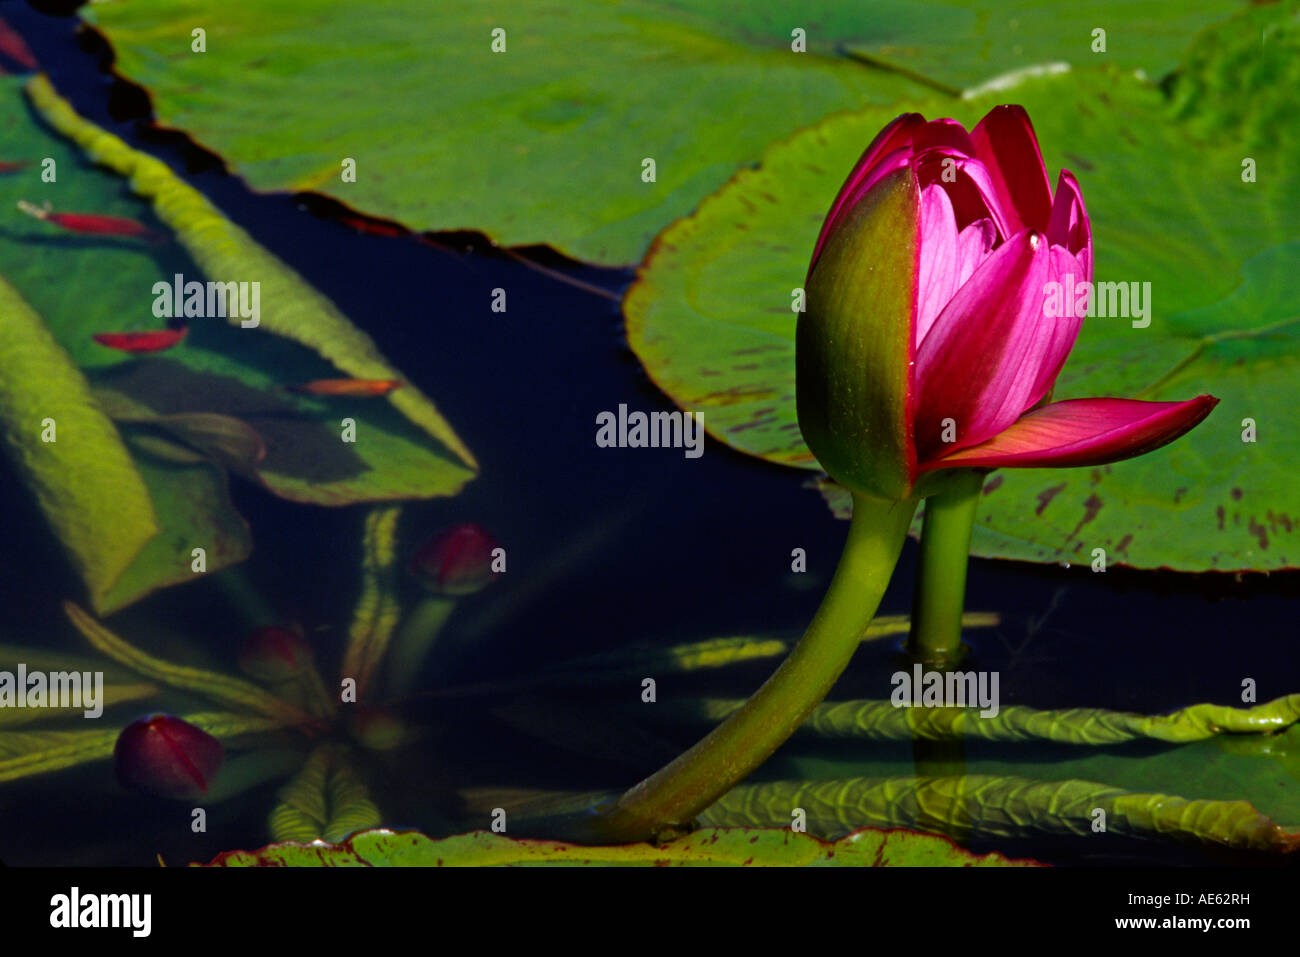 WATER LILY Nymphaea odorata in the ENCHANTING FLORAL GARDENS in KULA MAUI HAWAII - Stock Image